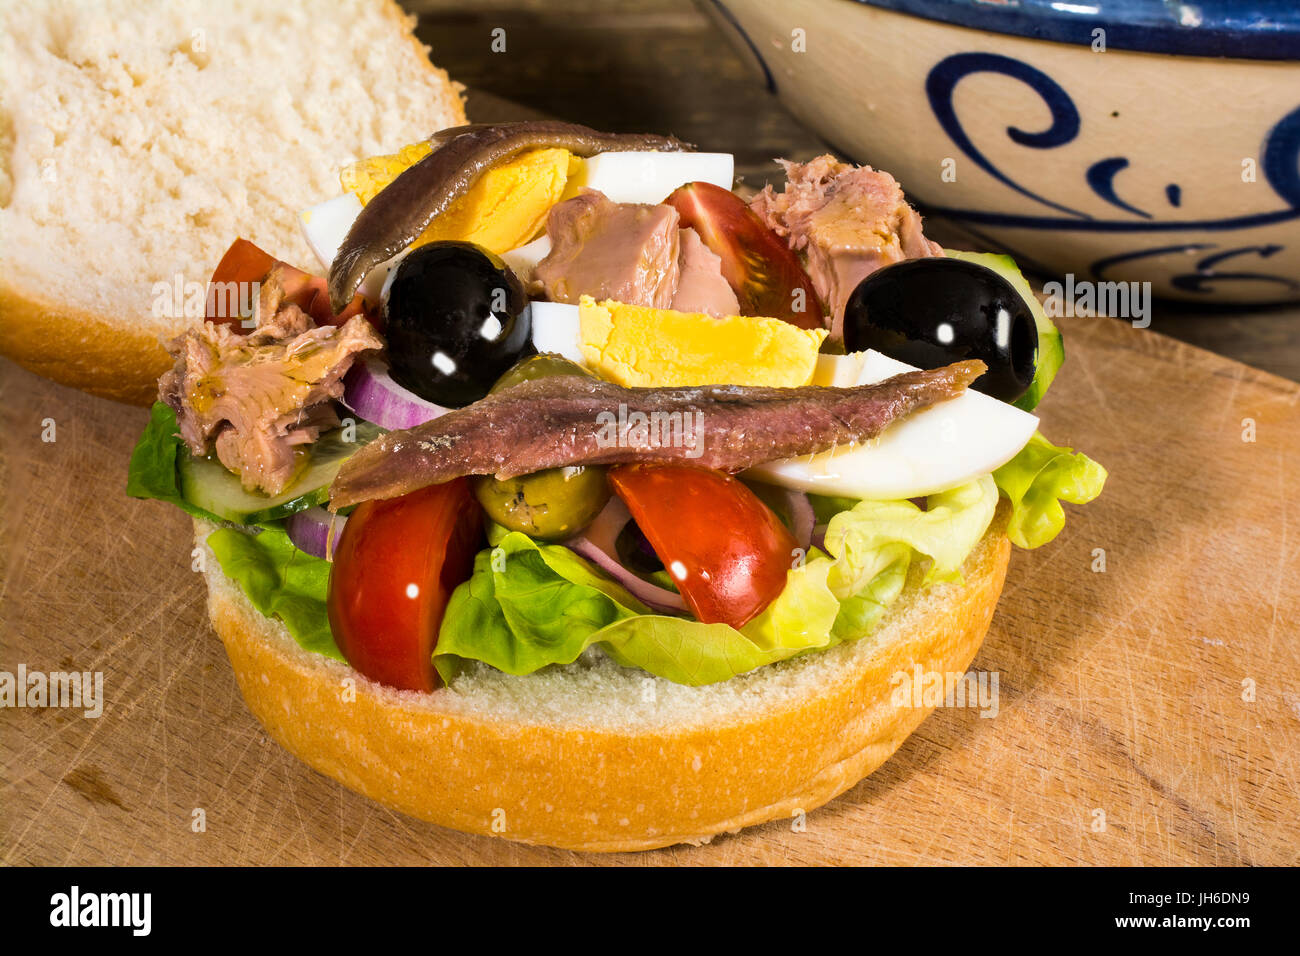 genuine pan bagnat traditional salad sandwich from nice france stock photo 148274597 alamy. Black Bedroom Furniture Sets. Home Design Ideas